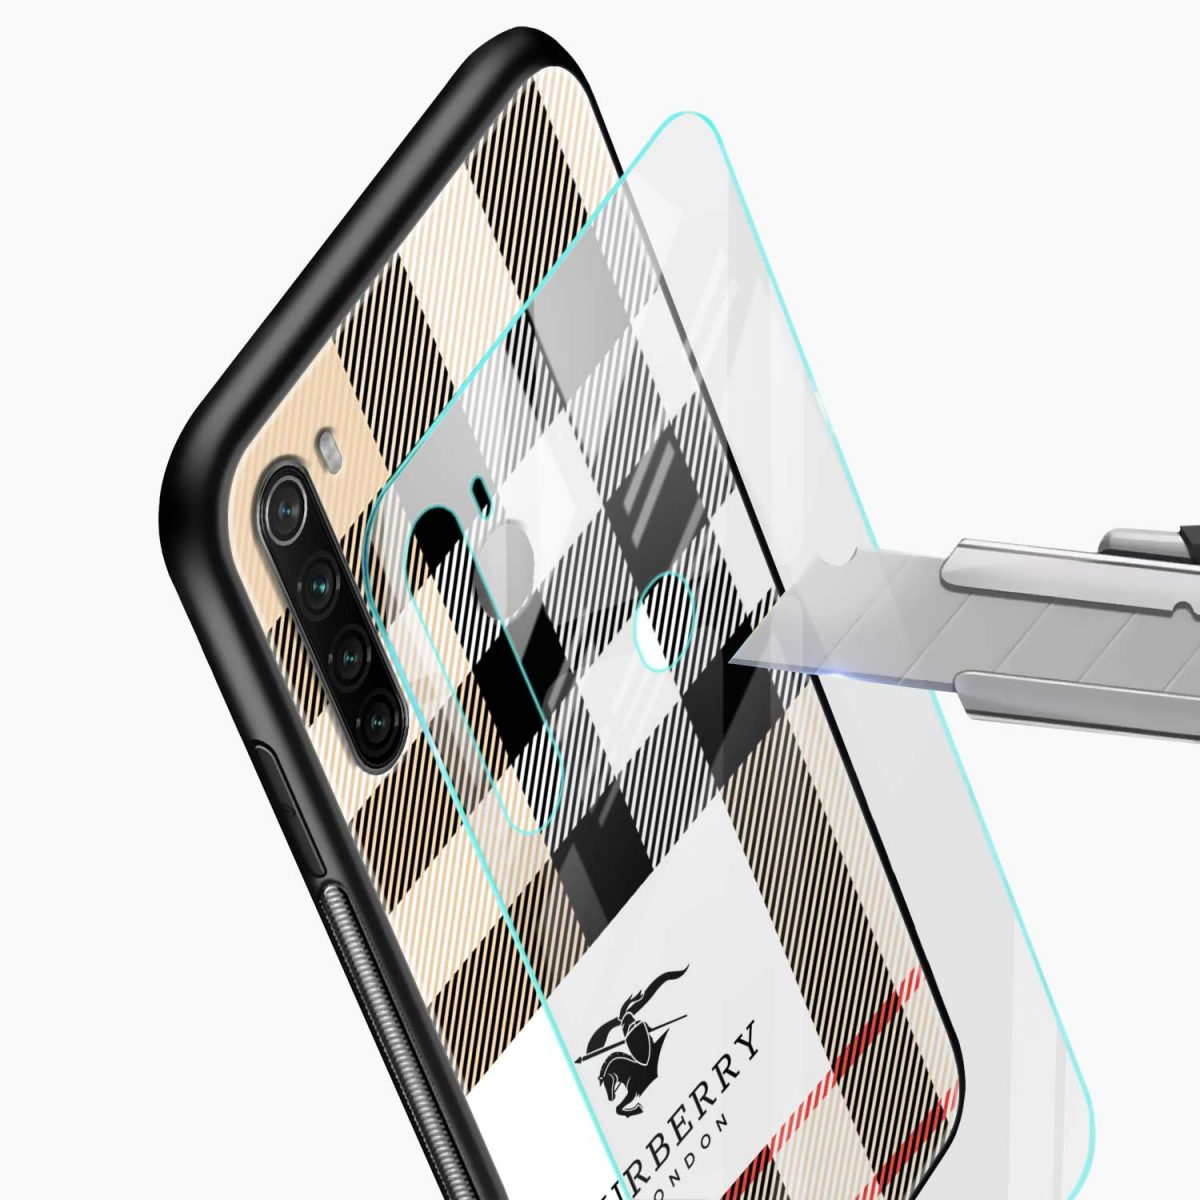 burberry cross lines pattern glass view redmi note 8 back cover 1